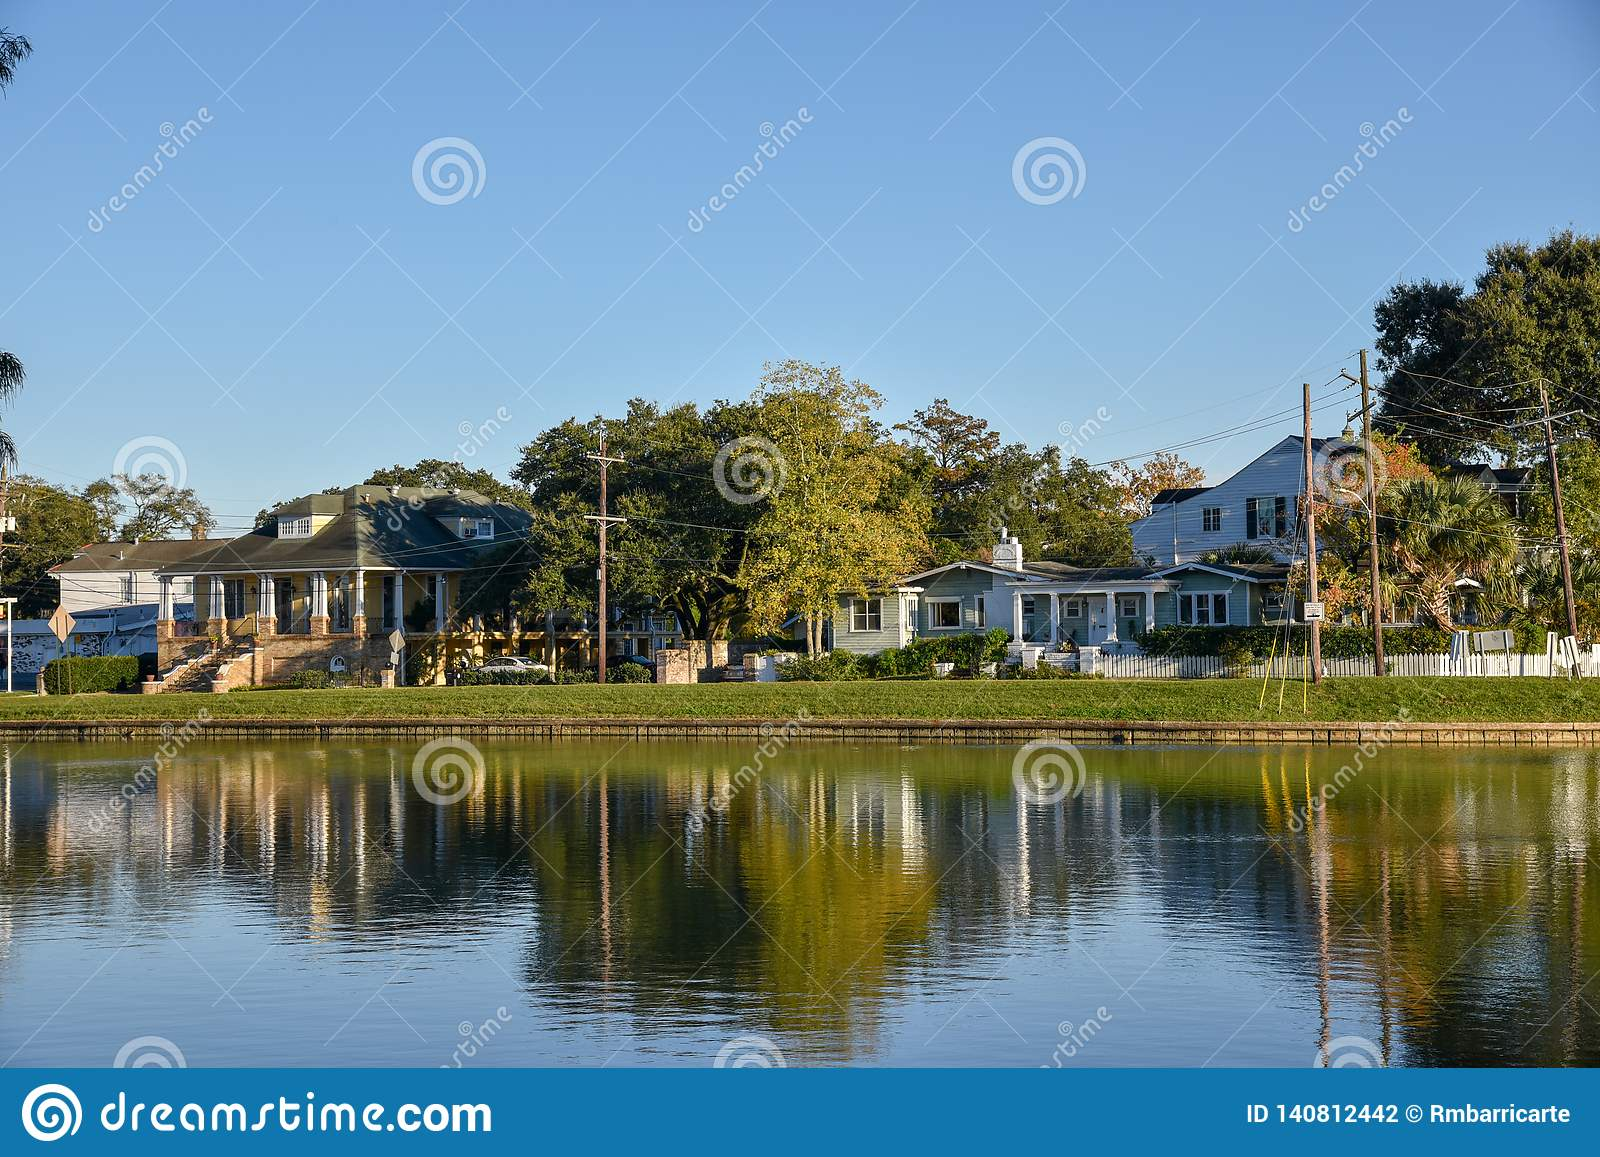 Typical houses in the Bayou St. John of New Orleans (USA